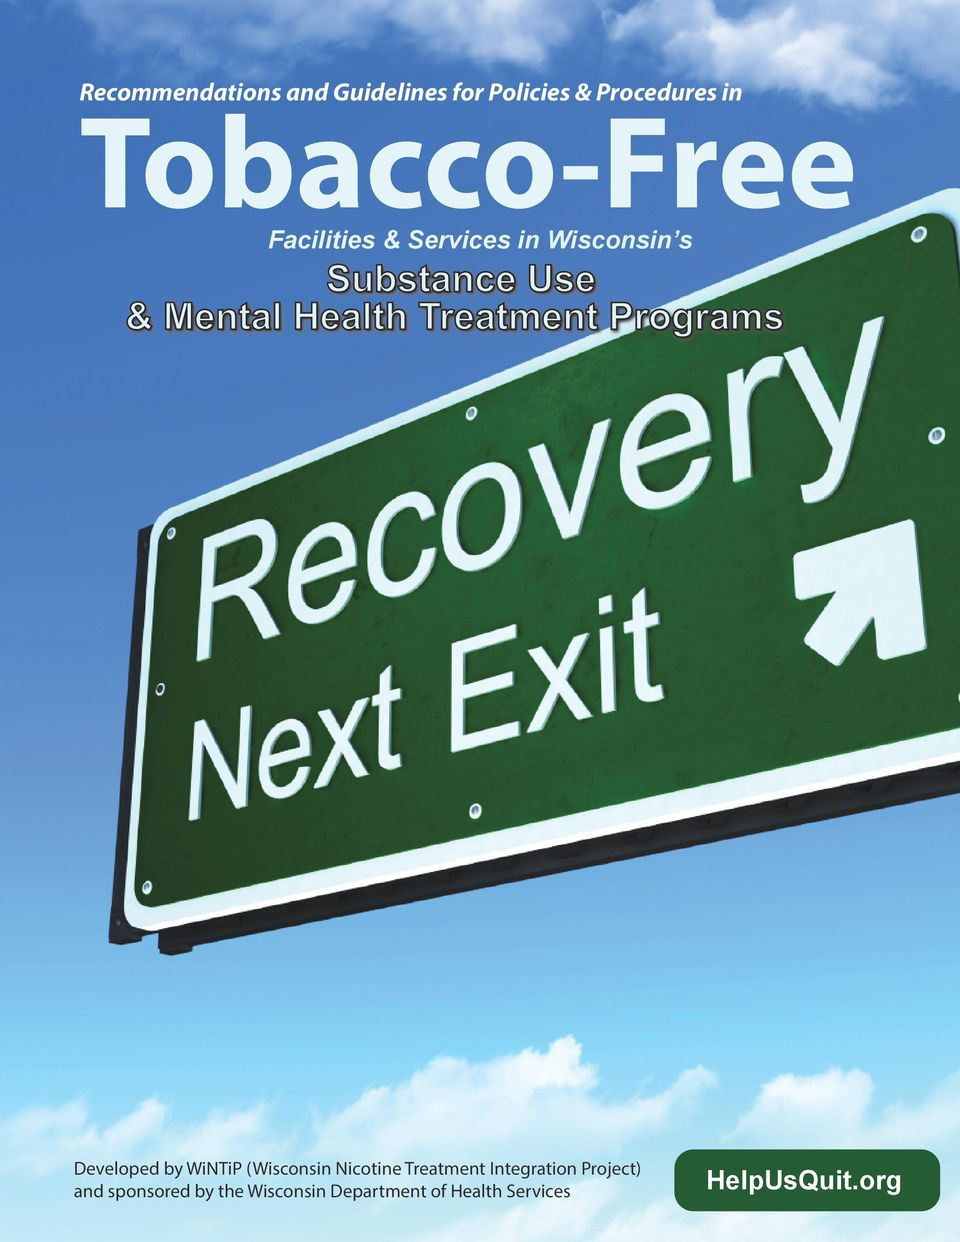 Programs Developed by WiNTiP (Wisconsin Nicotine Treatment Integration